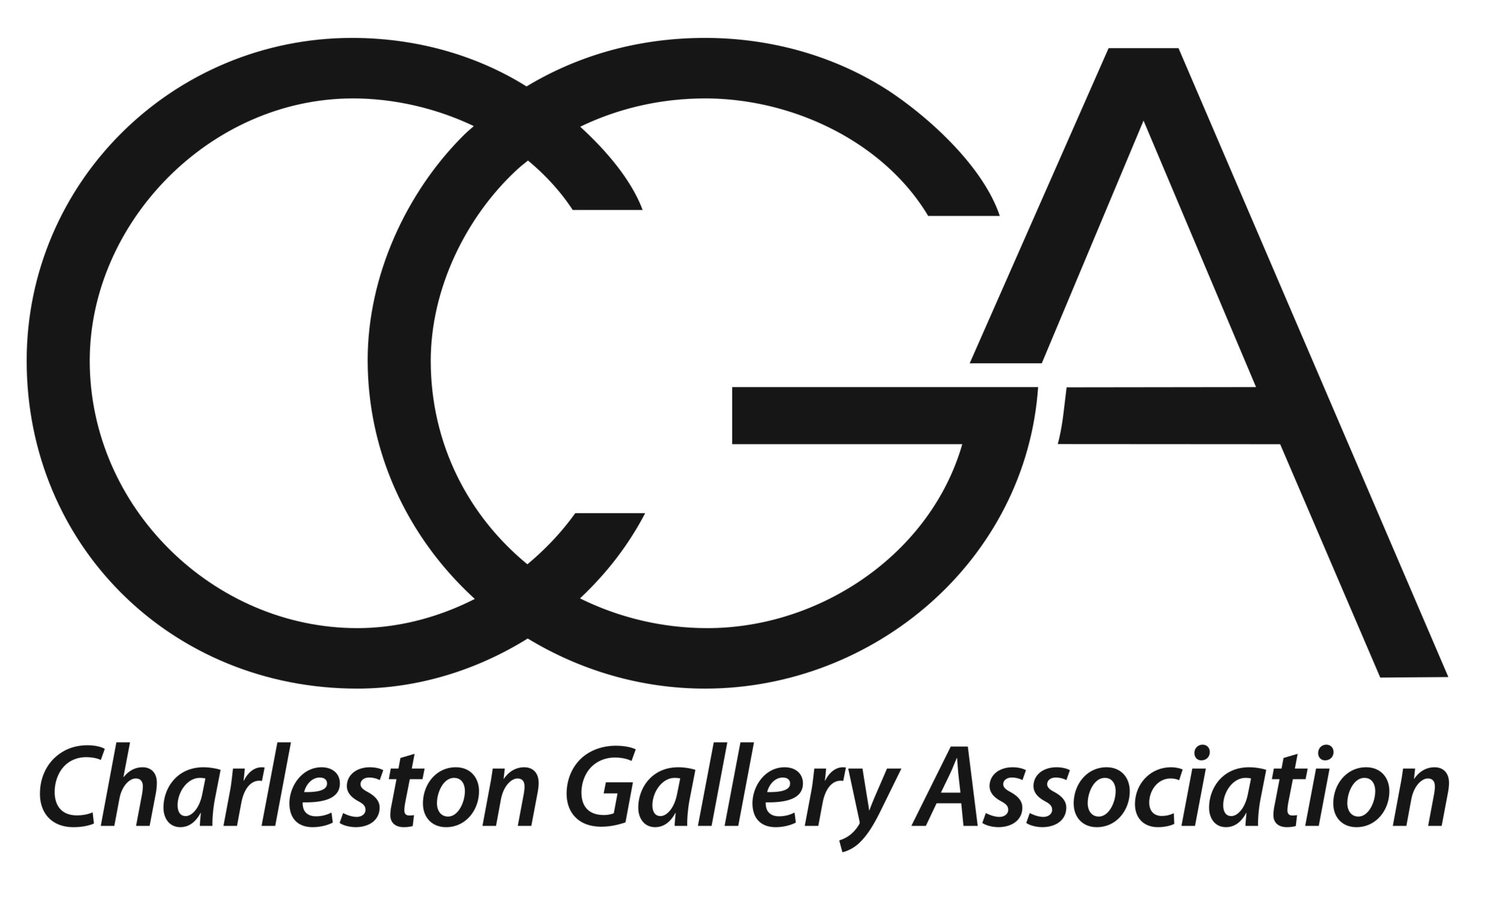 CHARLESTON GALLERY ASSOCIATION